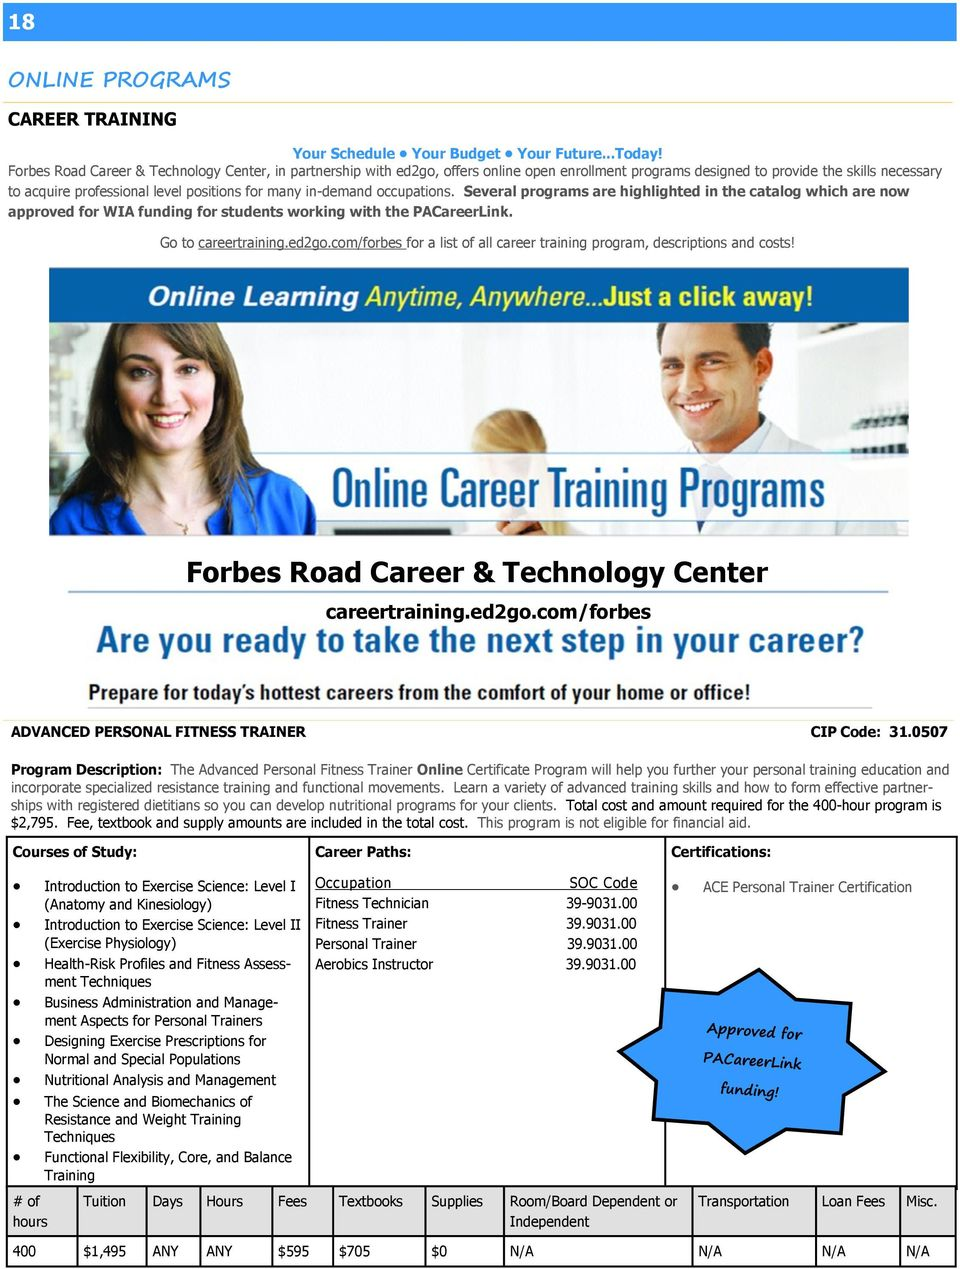 in-demand occupations. Several programs are highlighted in the catalog which are now approved for WIA funding for students working with the PACareerLink. Go to careertraining.ed2go.